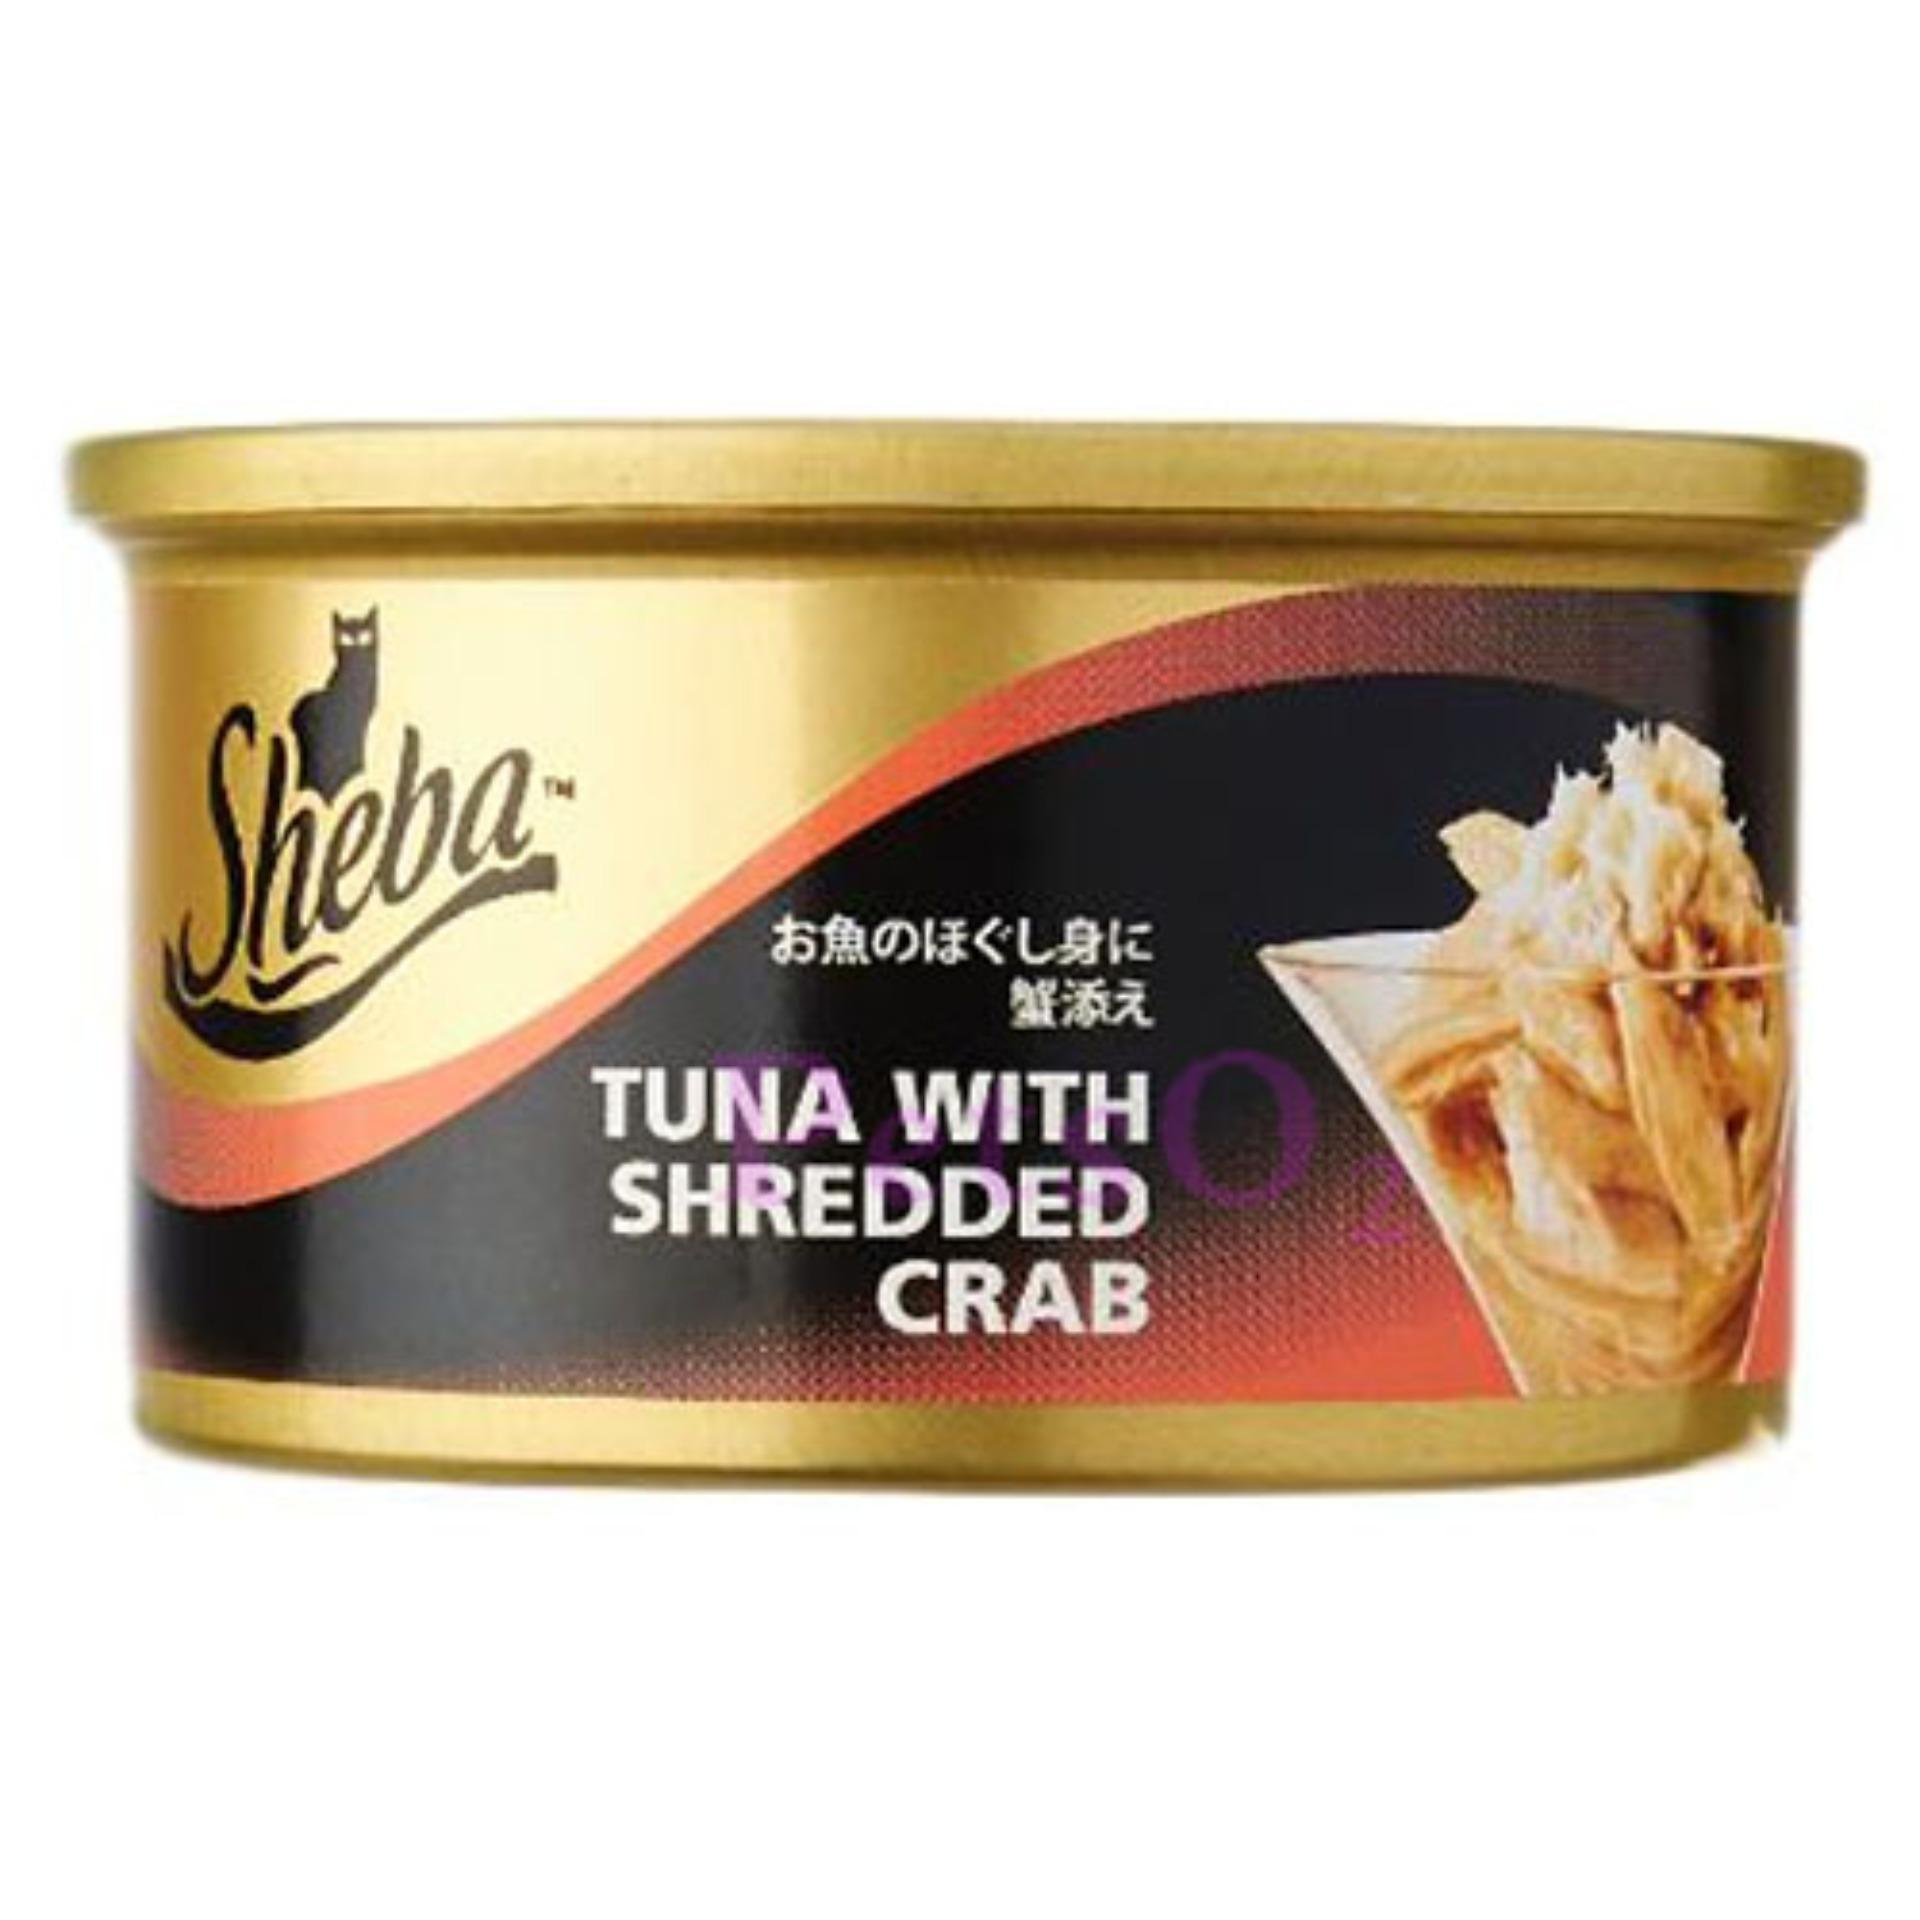 Sheba Tuna With Shredded Crab 85G X24 Cans For Sale Online